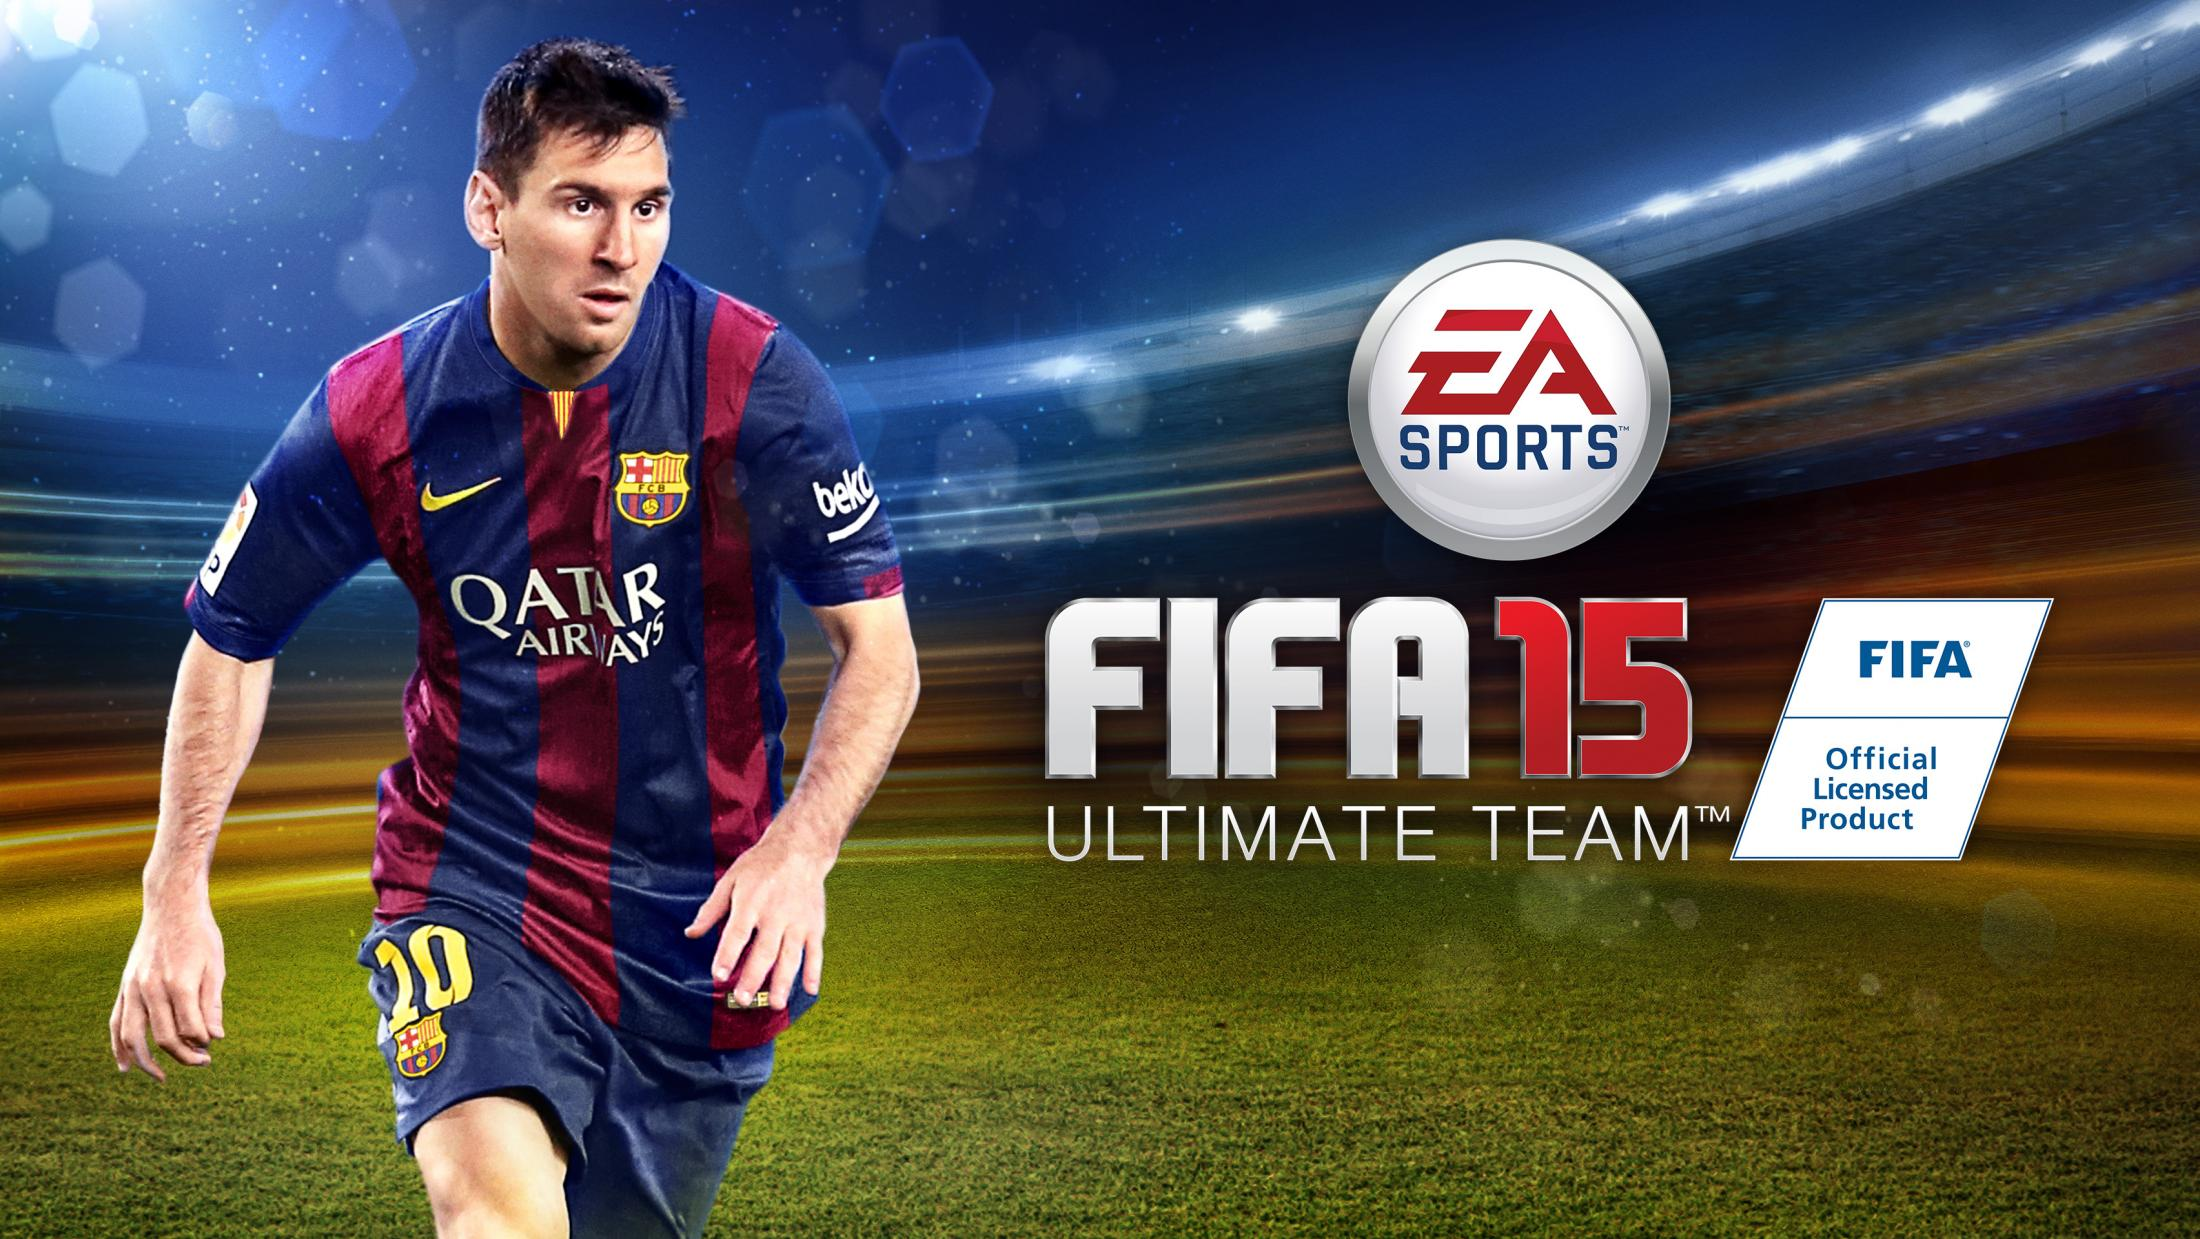 Ea Official Website: EA SPORTS FIFA - EA SPORTS FIFA 15 WEBSITE